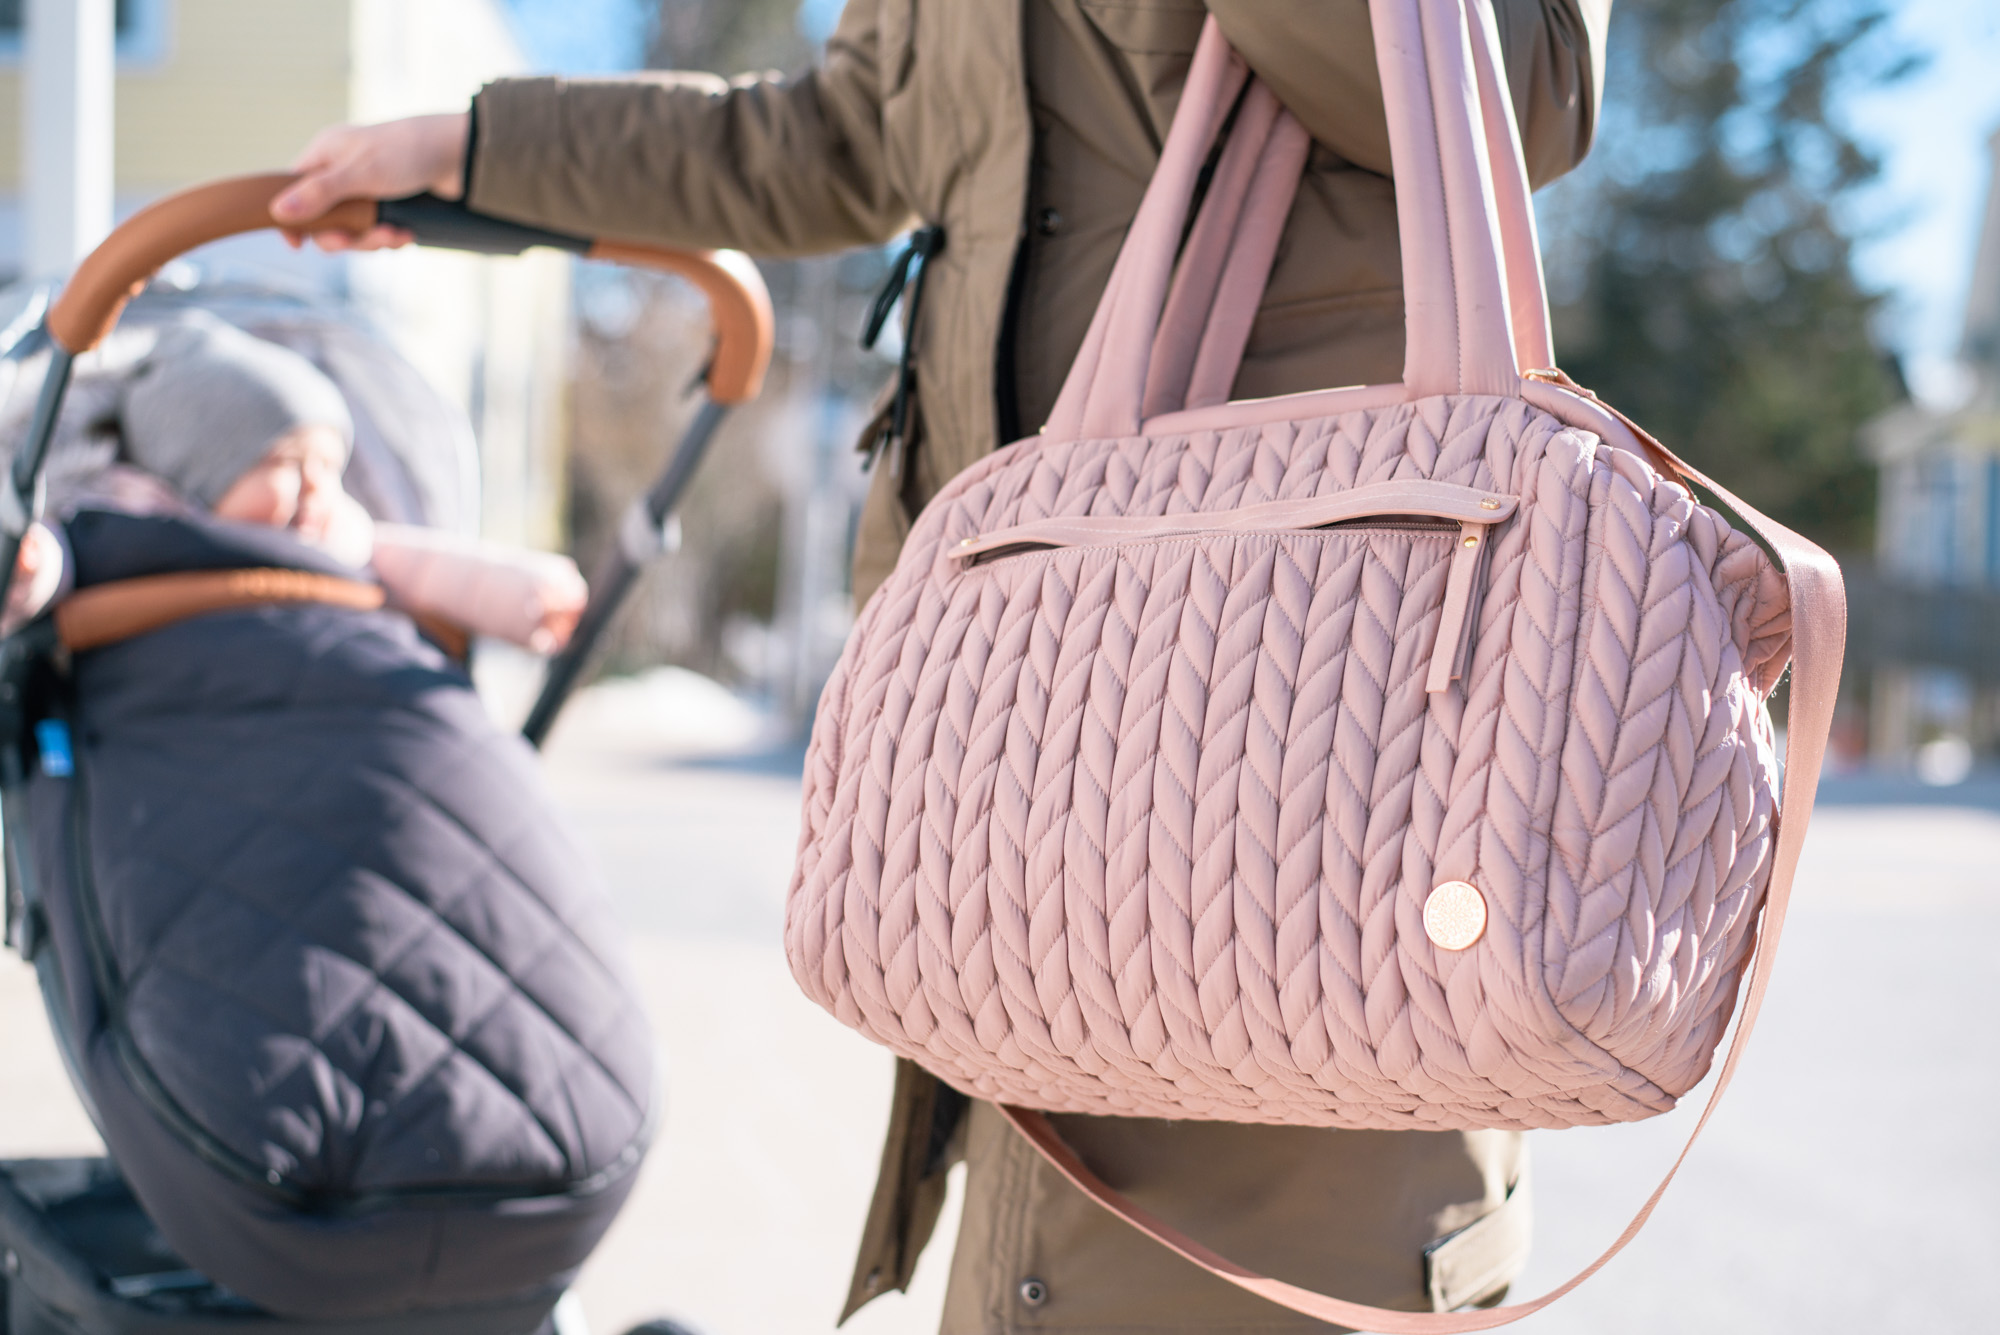 Styling a Pink diaper bag by Happ with the Uppababy Vista